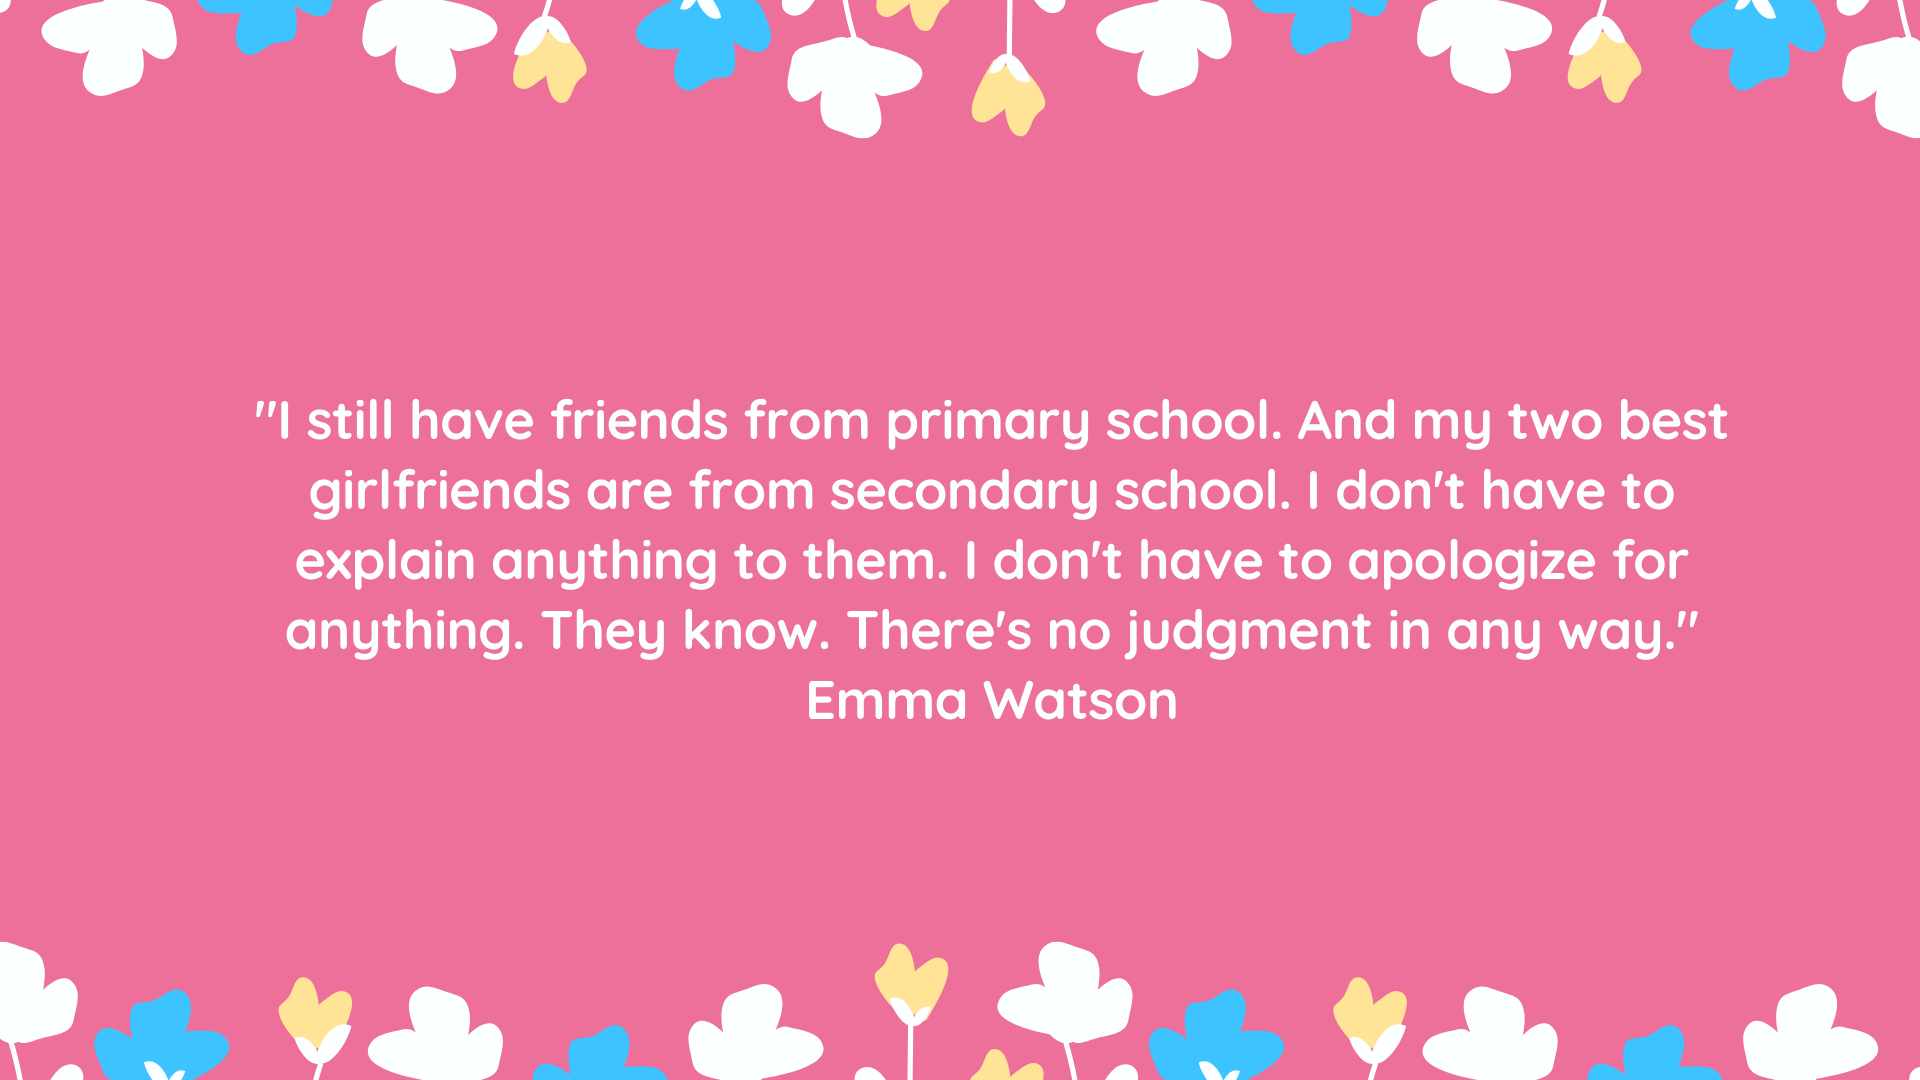 """I still have friends from primary school. And my two best girlfriends are from secondary school. I don't have to explain anything to them. I don't have to apologize for anything. They know. There's no judgment in any way."" Emma Watson"